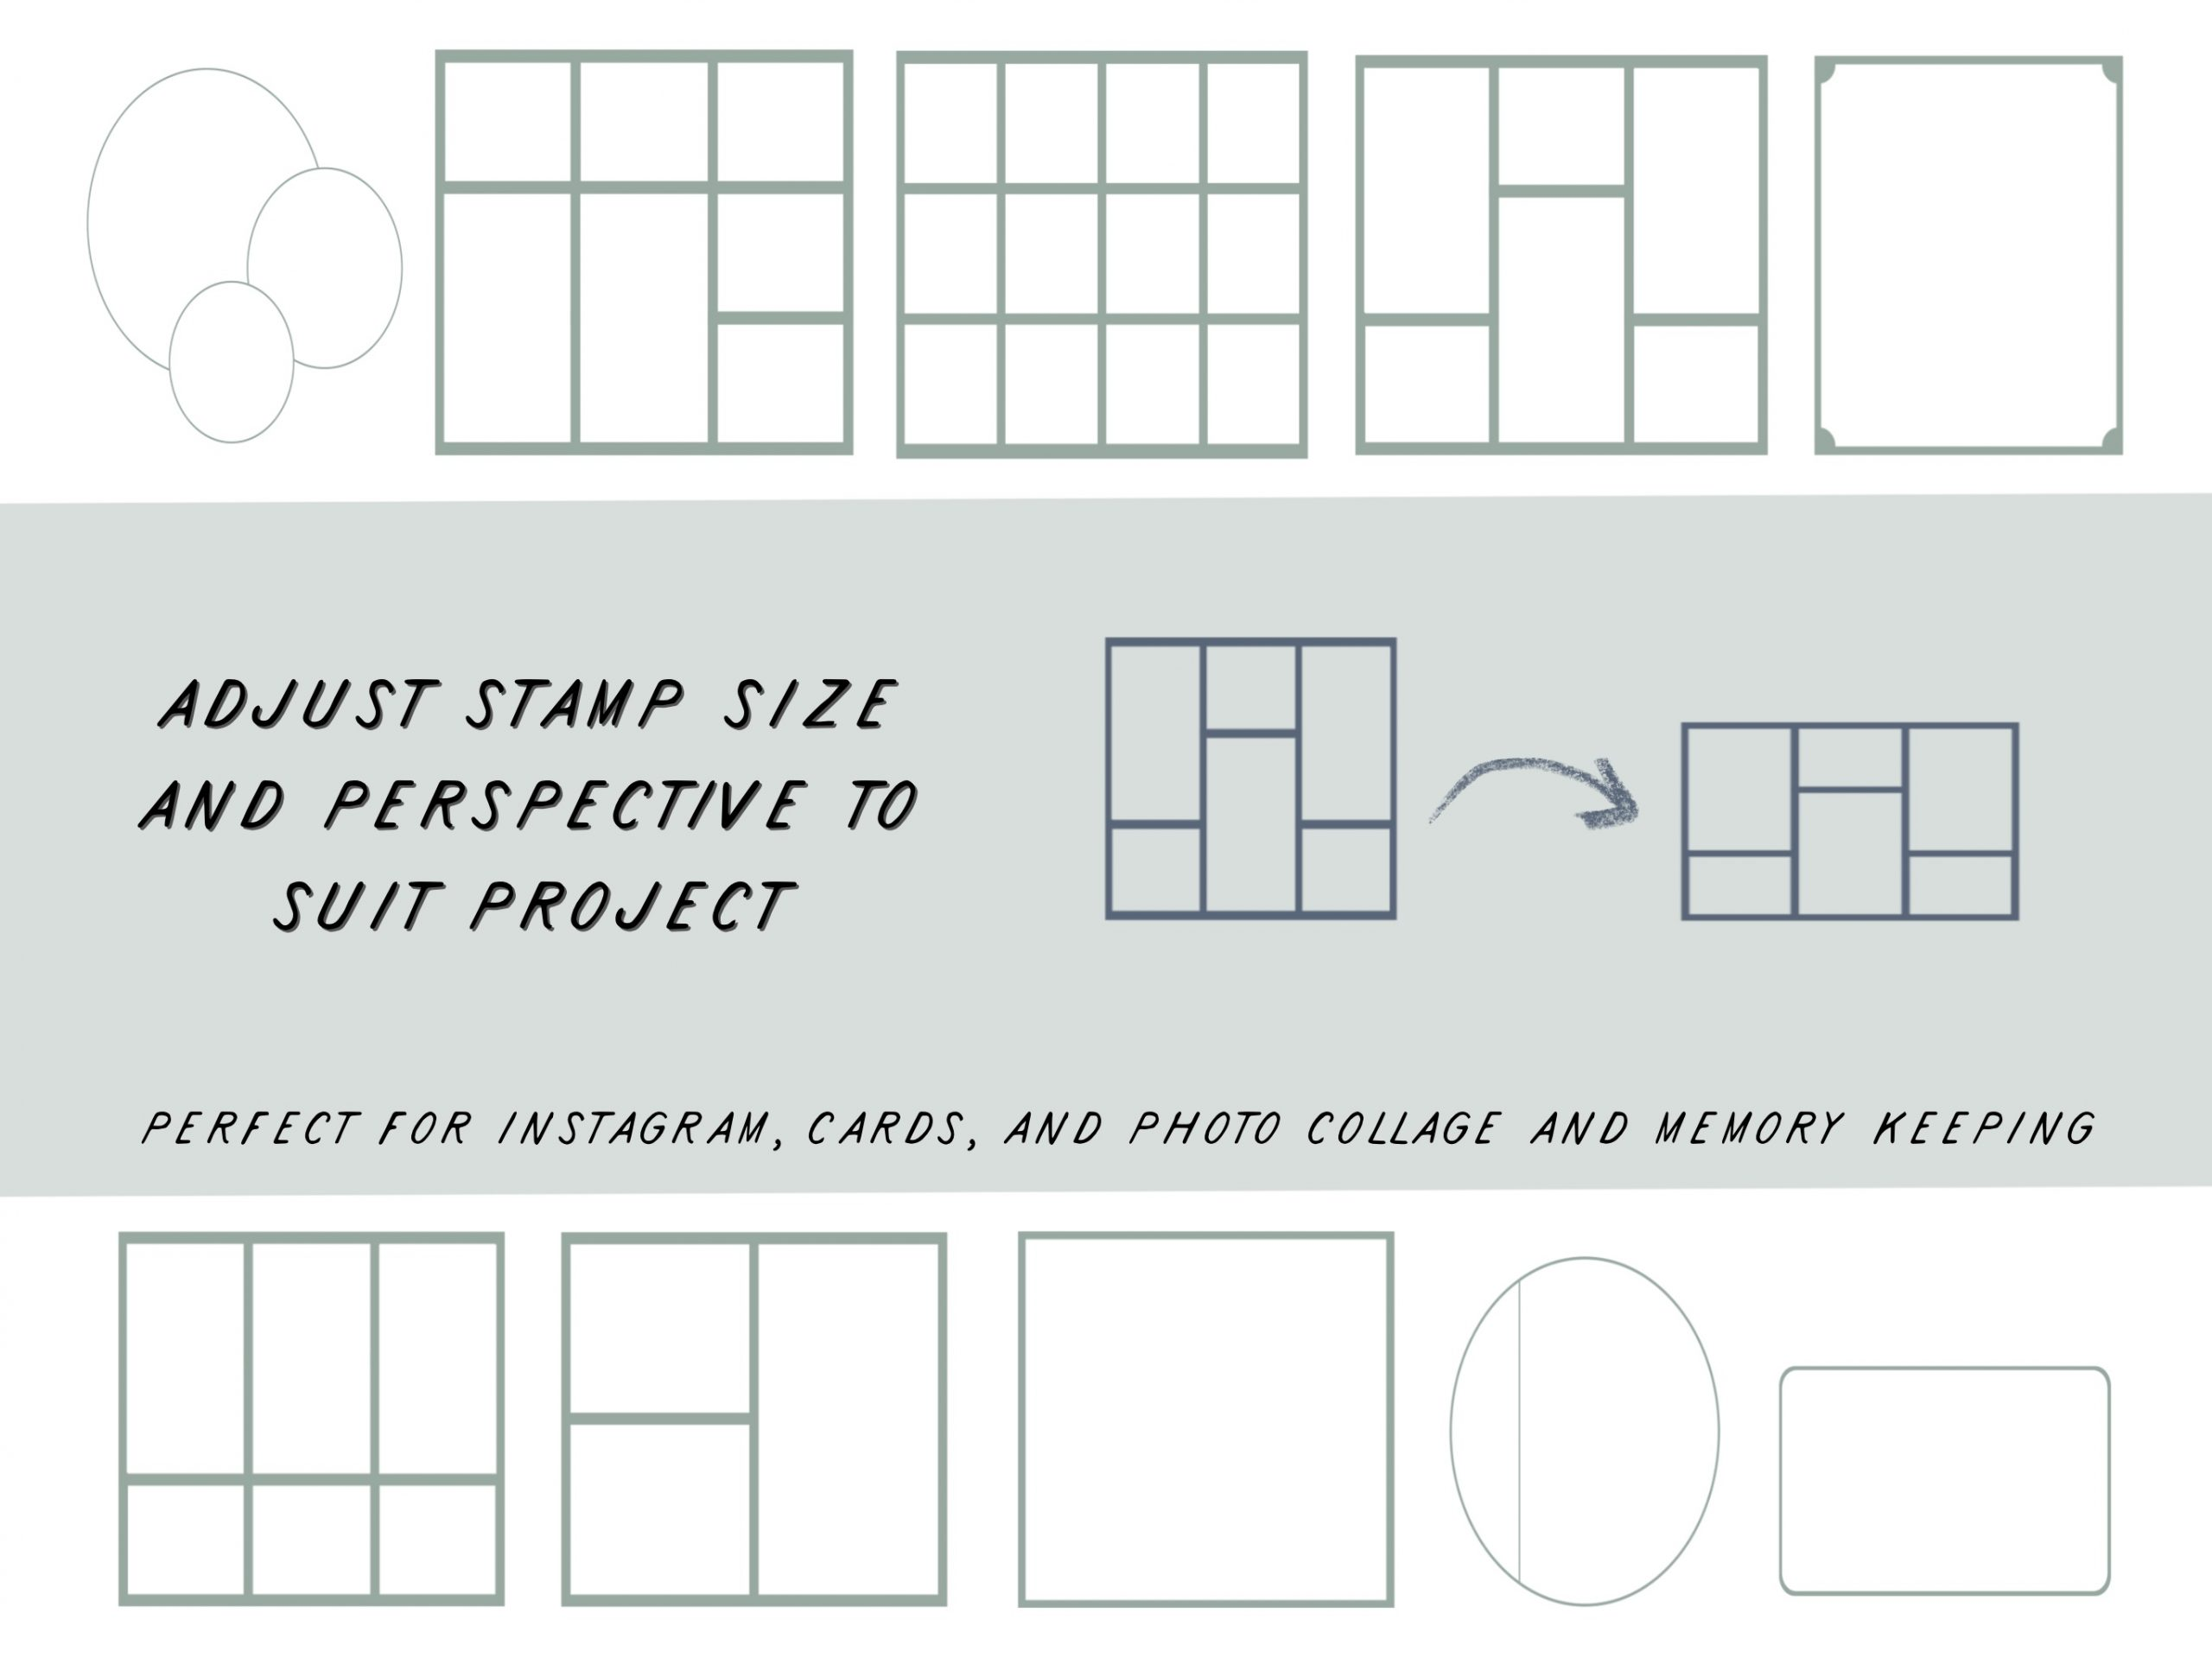 10 Photo Storyboard Stamps